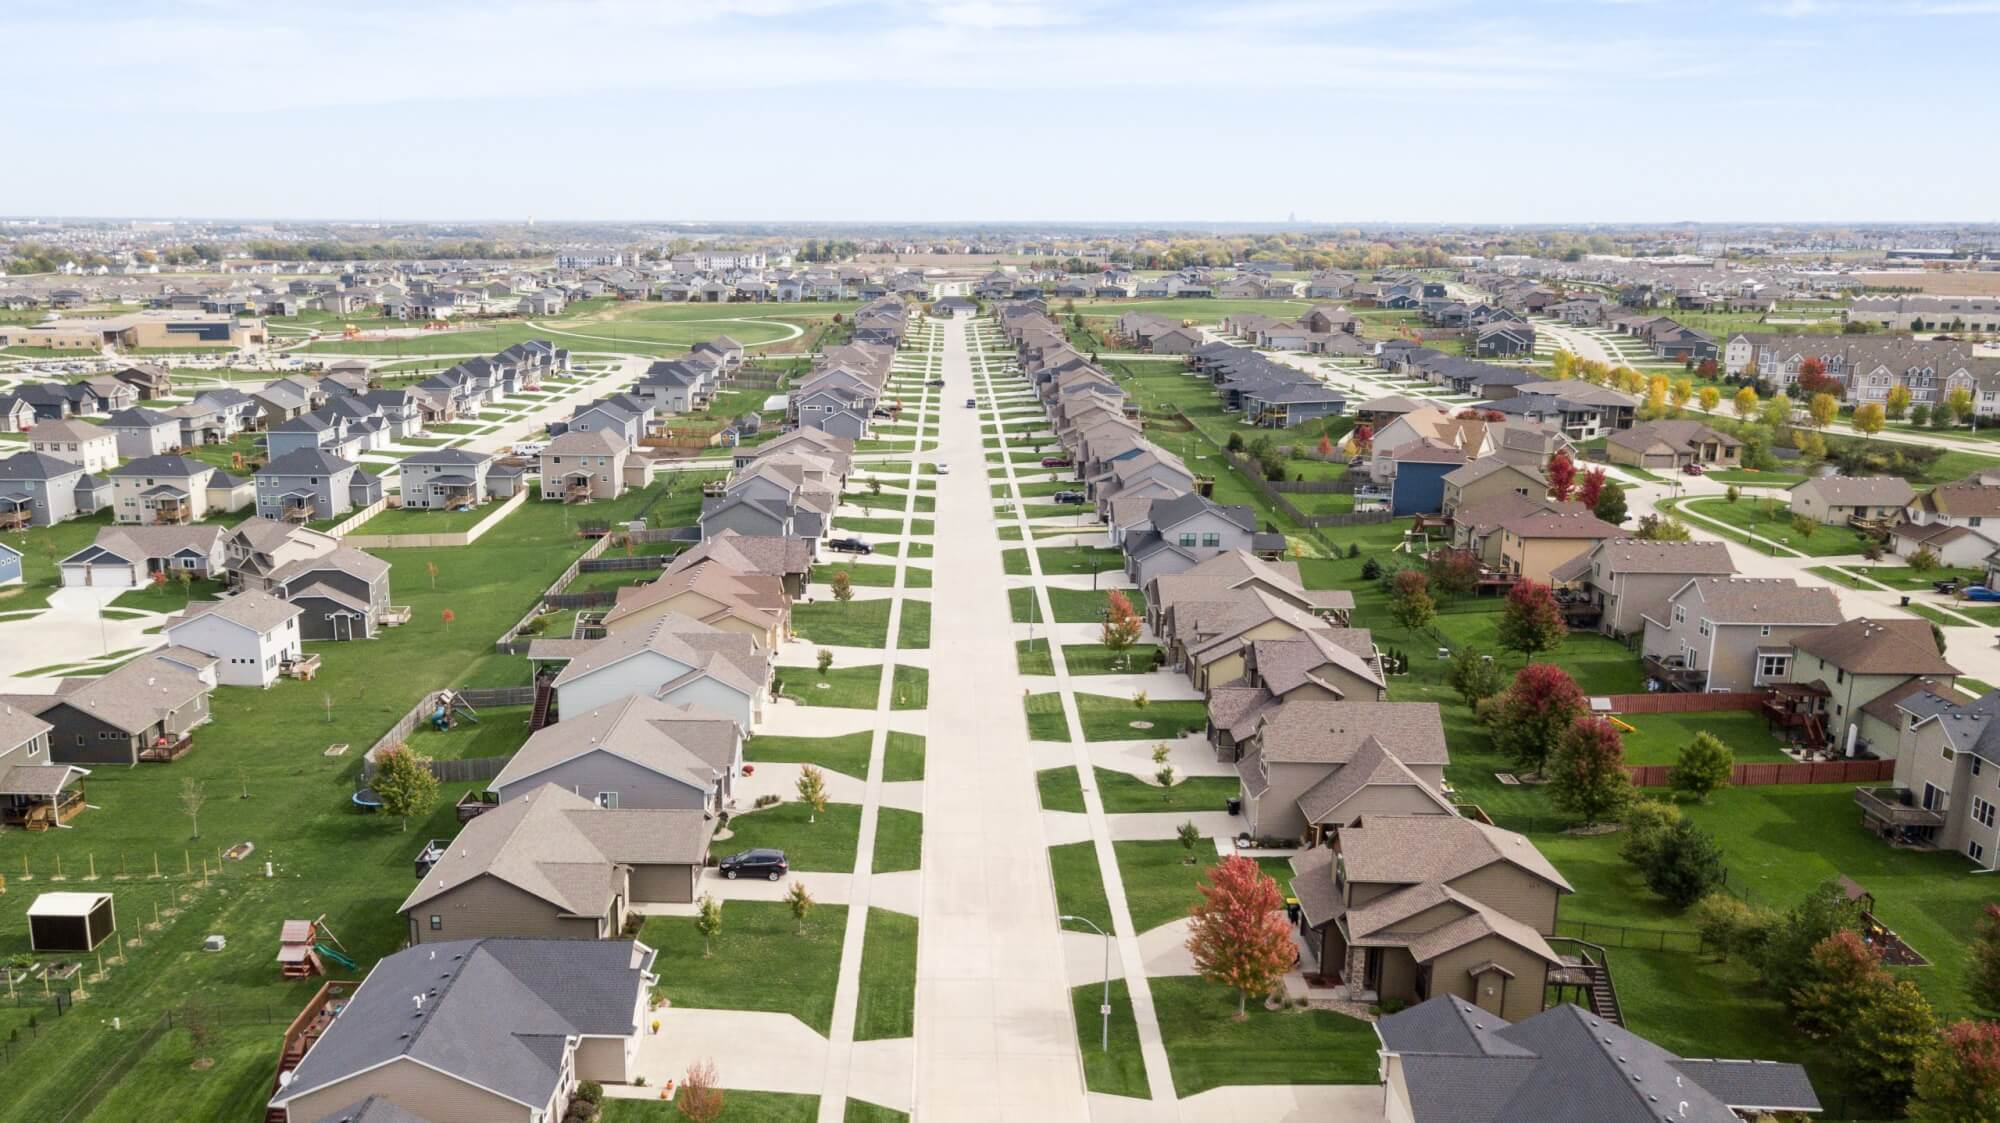 HOUSING – Large Suburban Housing Development